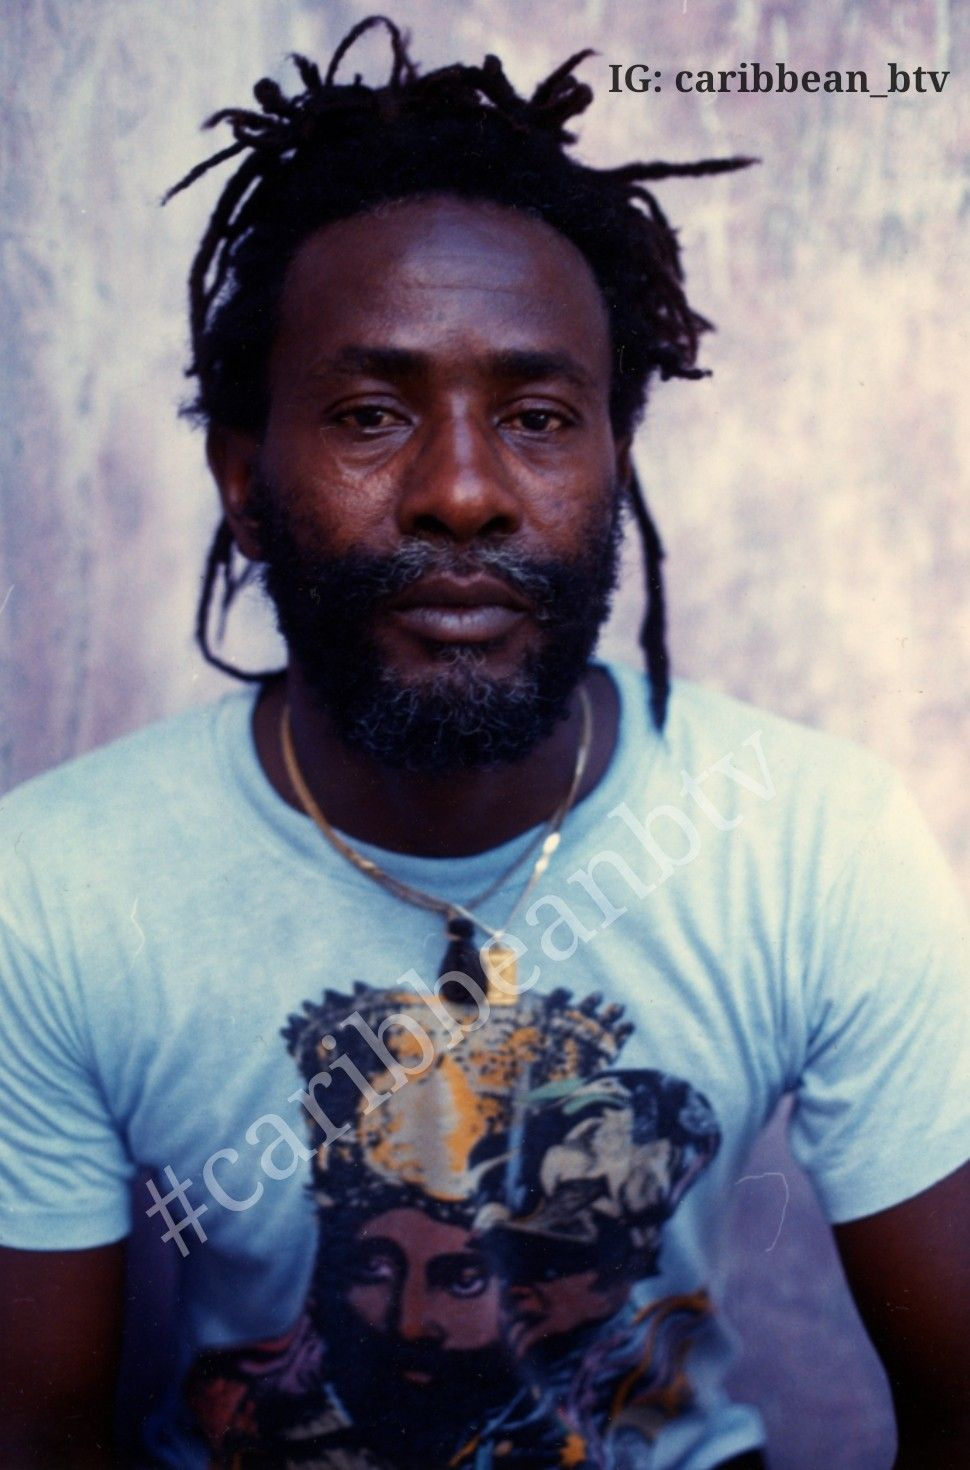 Burning Spear - Winston Rodney (born 1 March 1945), better known by the